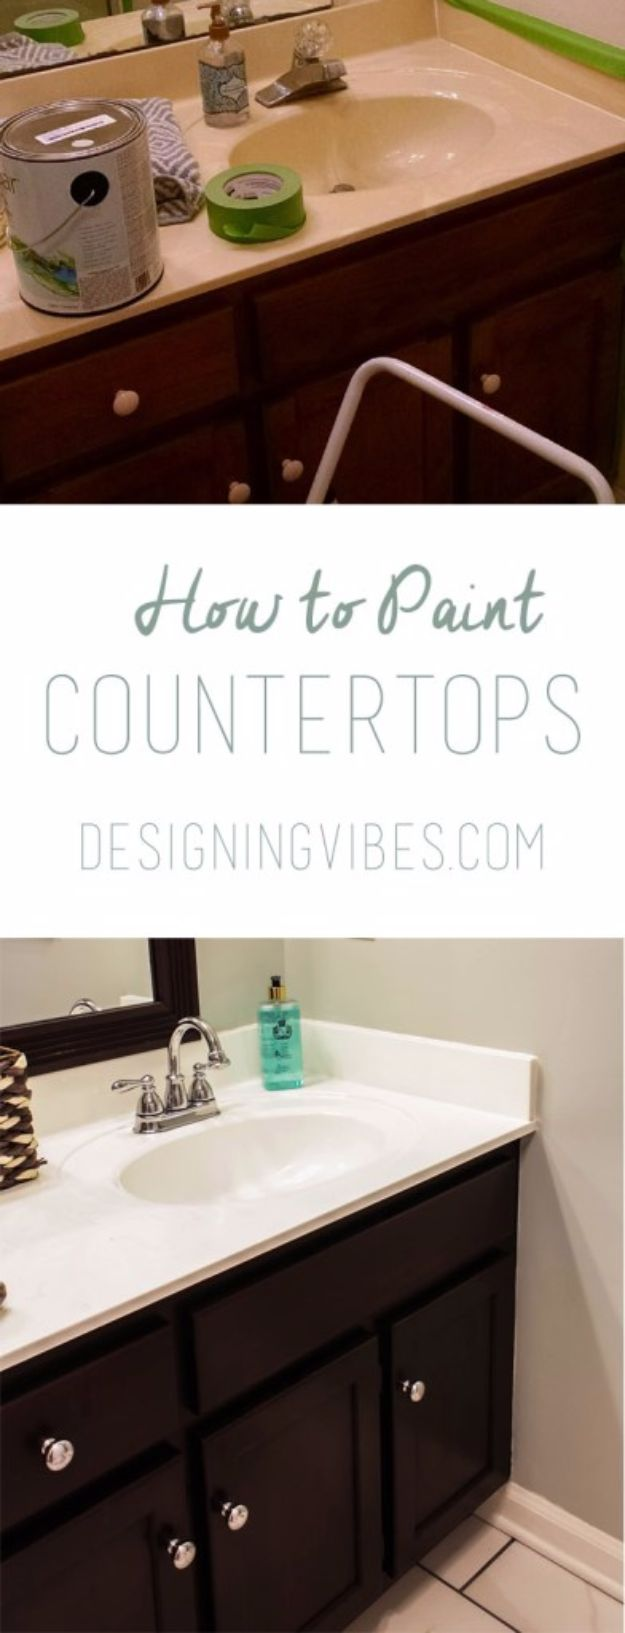 DIY Home Improvement Projects On A Budget - Paint Cultured Marble Countertops - Cool Home Improvement Hacks, Easy and Cheap Do It Yourself Tutorials for Updating and Renovating Your House - Home Decor Tips and Tricks, Remodeling and Decorating Hacks - DIY Projects